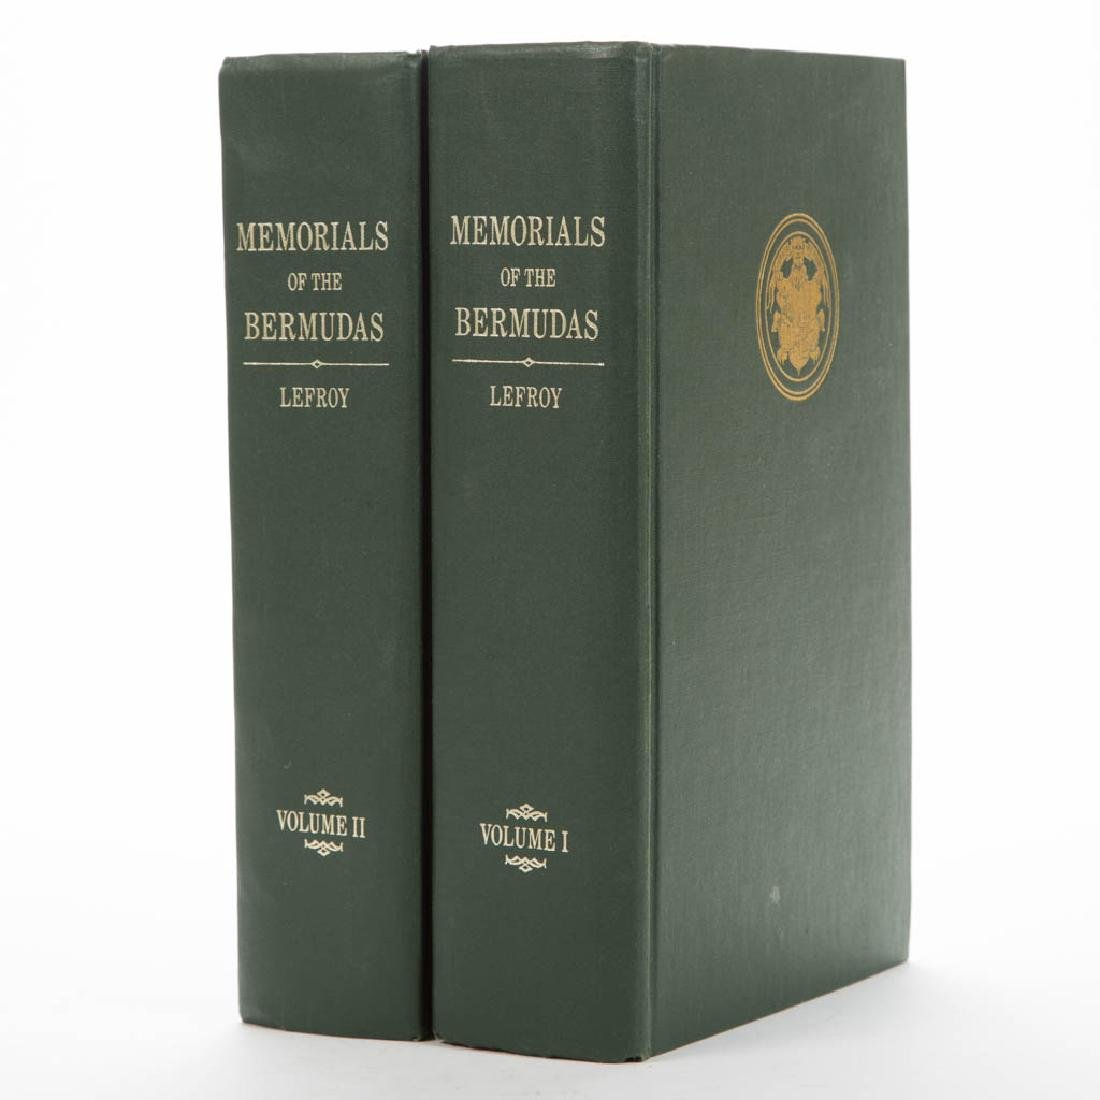 BERMUDA HISTORY / ARCHAEOLOGY VOLUMES, SET OF TWO